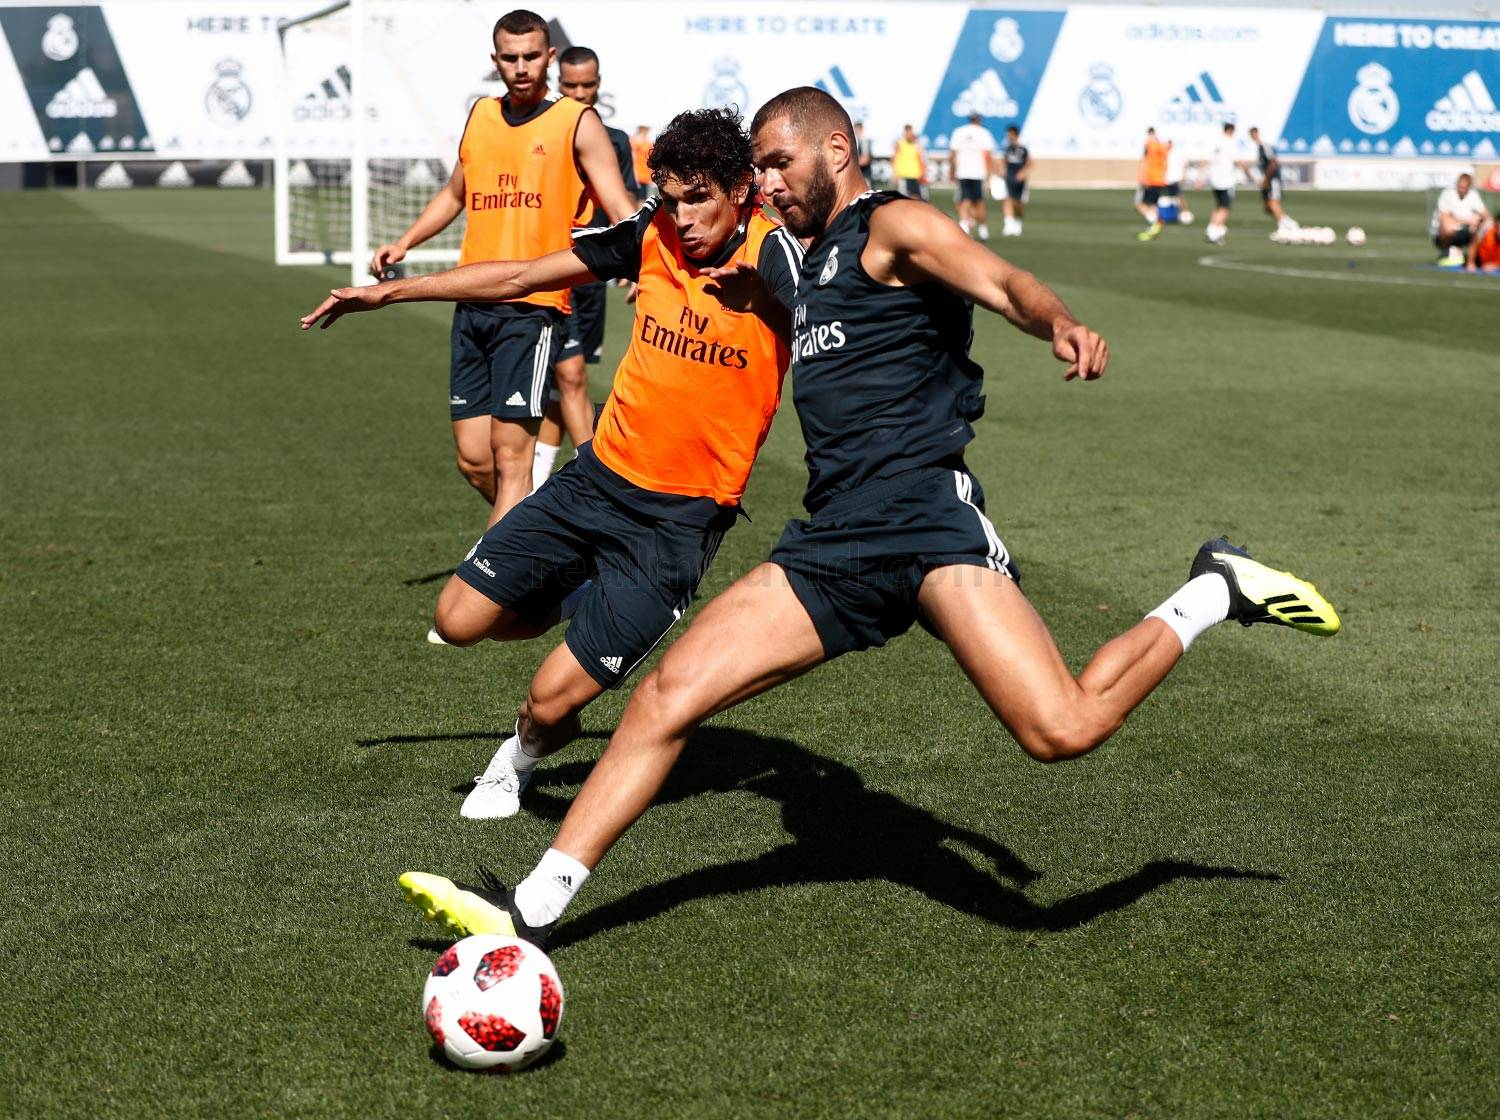 Real Madrid - Entrenamiento del Real Madrid - 24-07-2018